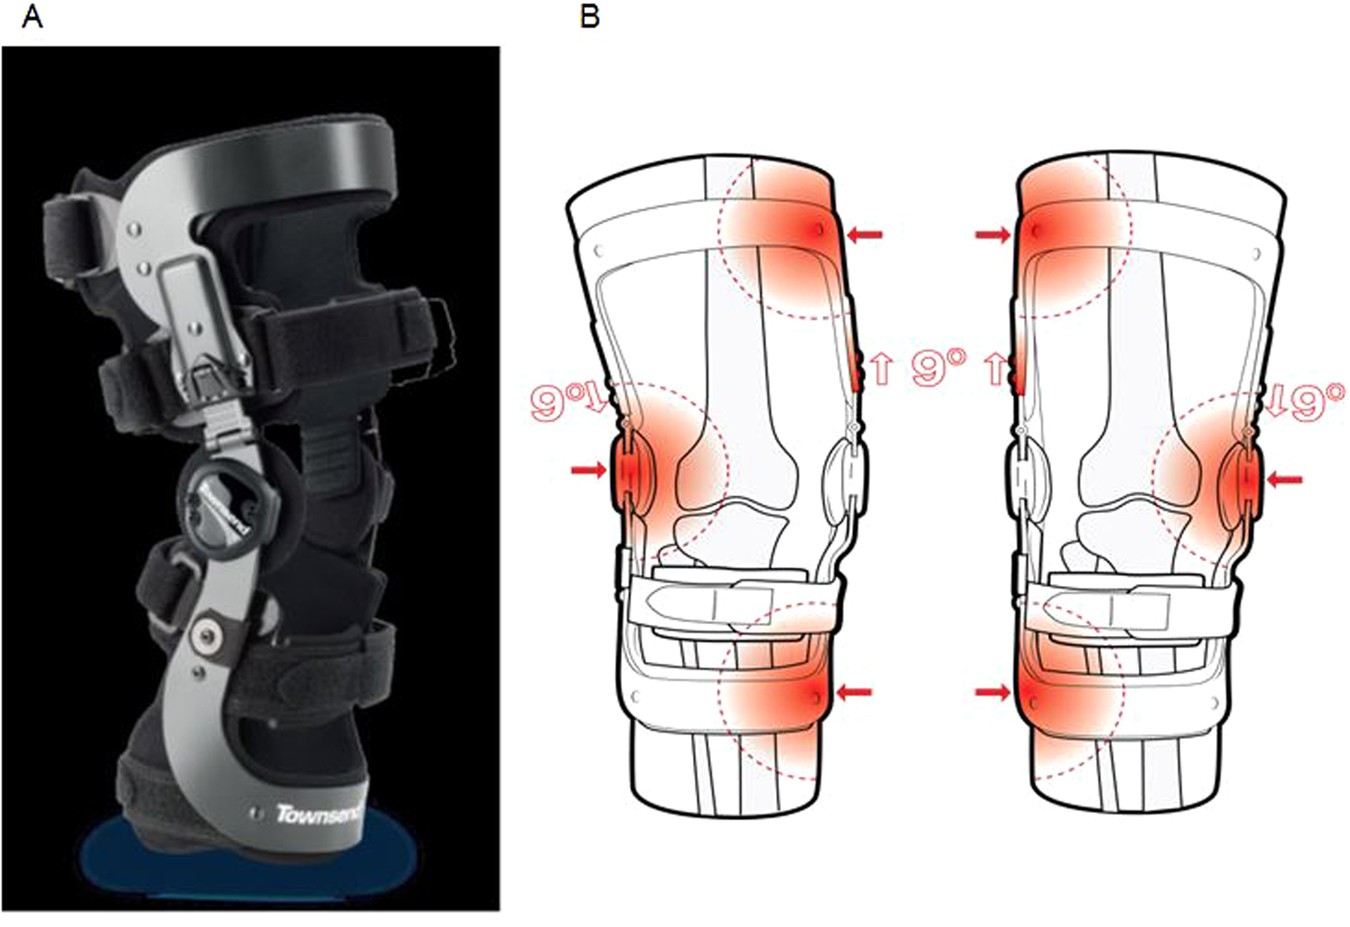 efebe53338 Effect of unloading brace treatment on pain and function in patients with  symptomatic knee osteoarthritis: the ROTOR randomized clinical trial |  Scientific ...